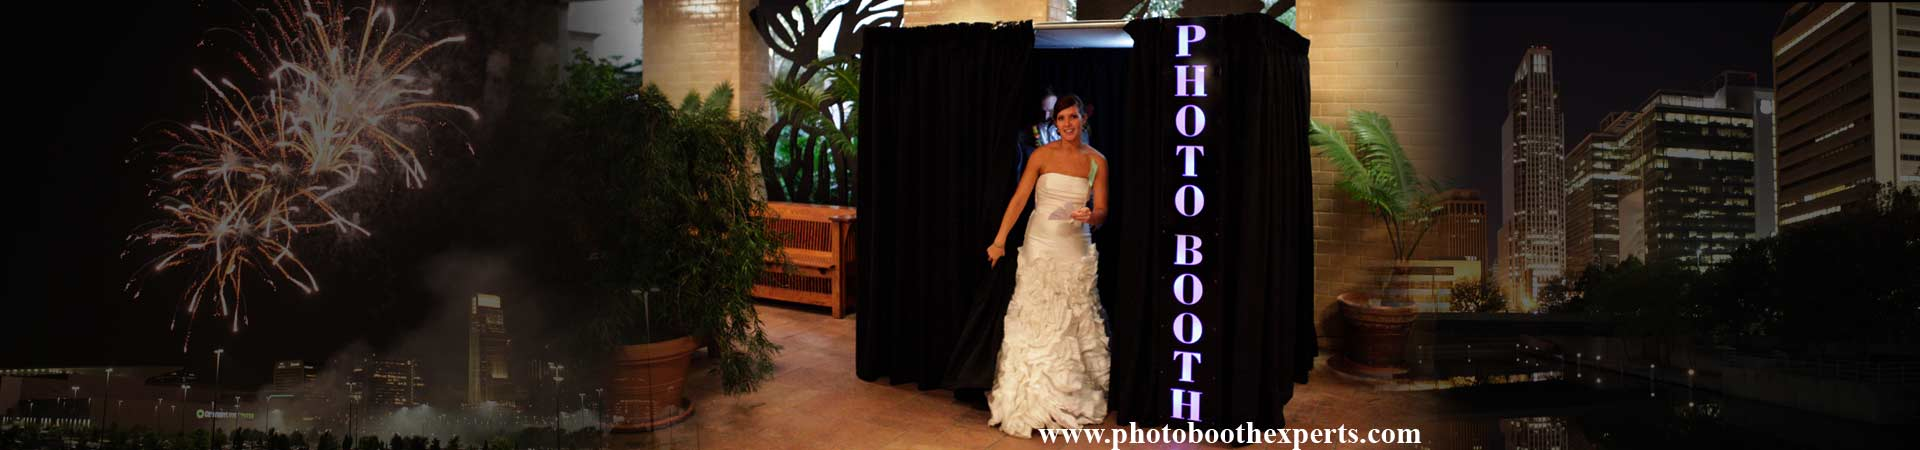 Luxury Photo Booth Rental Service